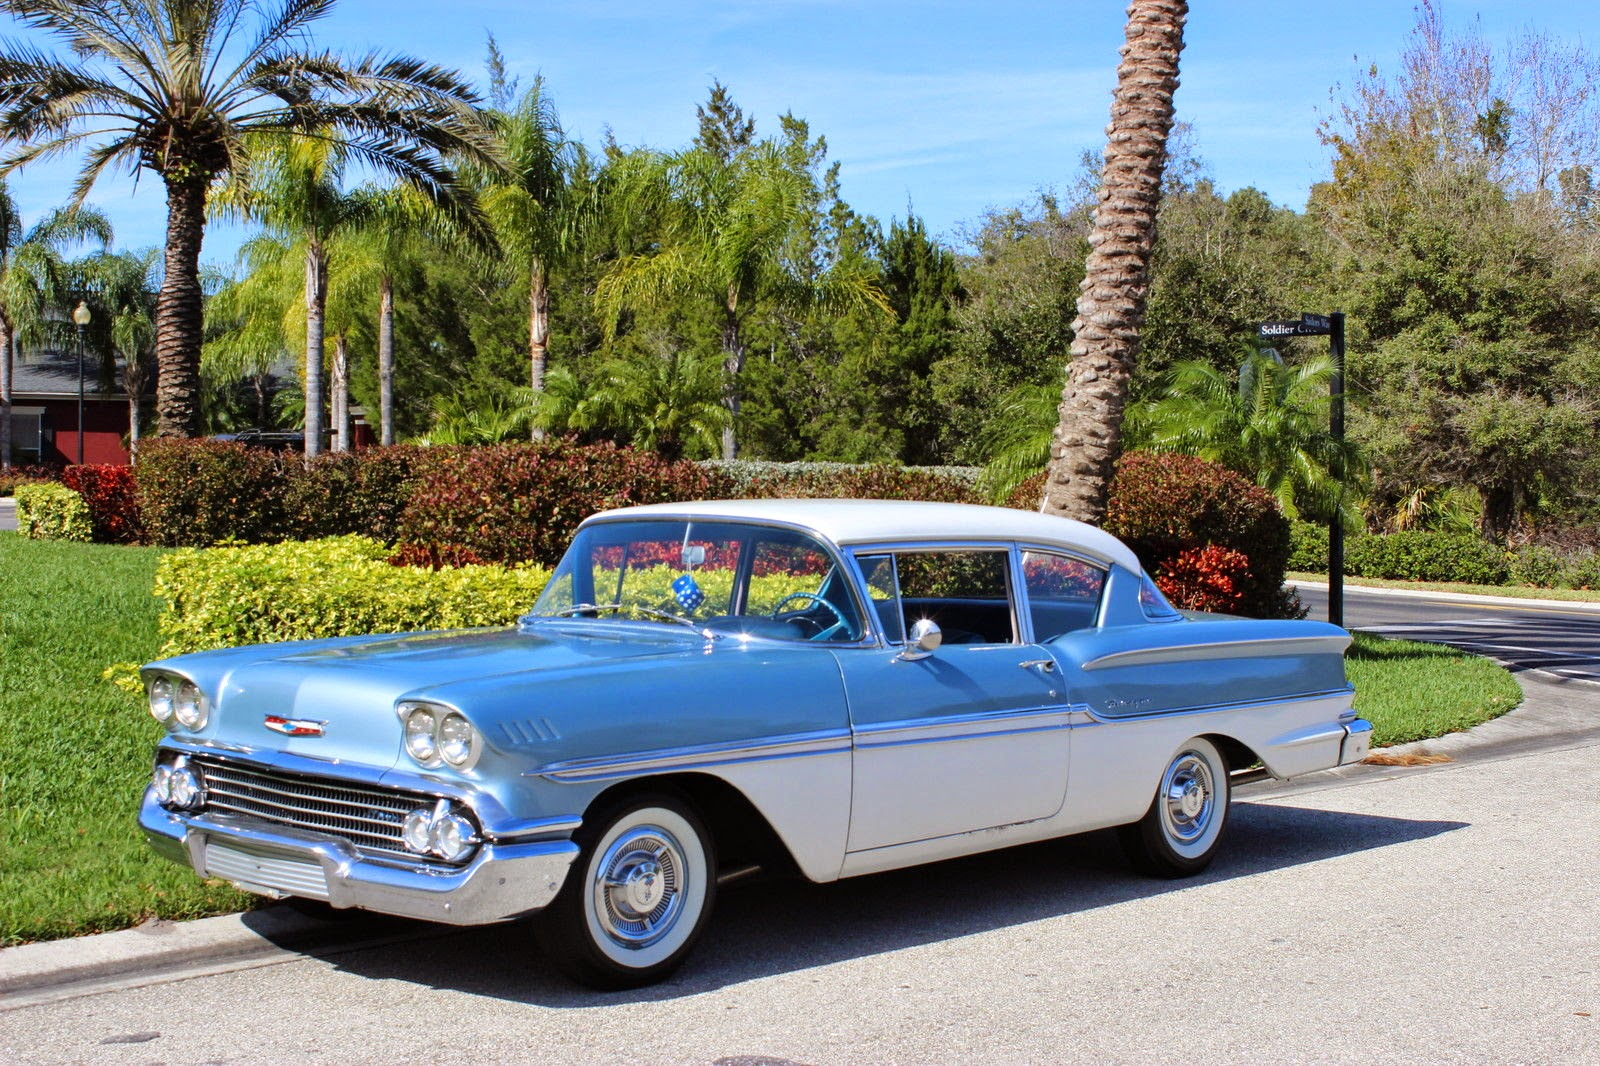 All American Classic Cars: 1958 Chevrolet Biscayne 2Door Sedan